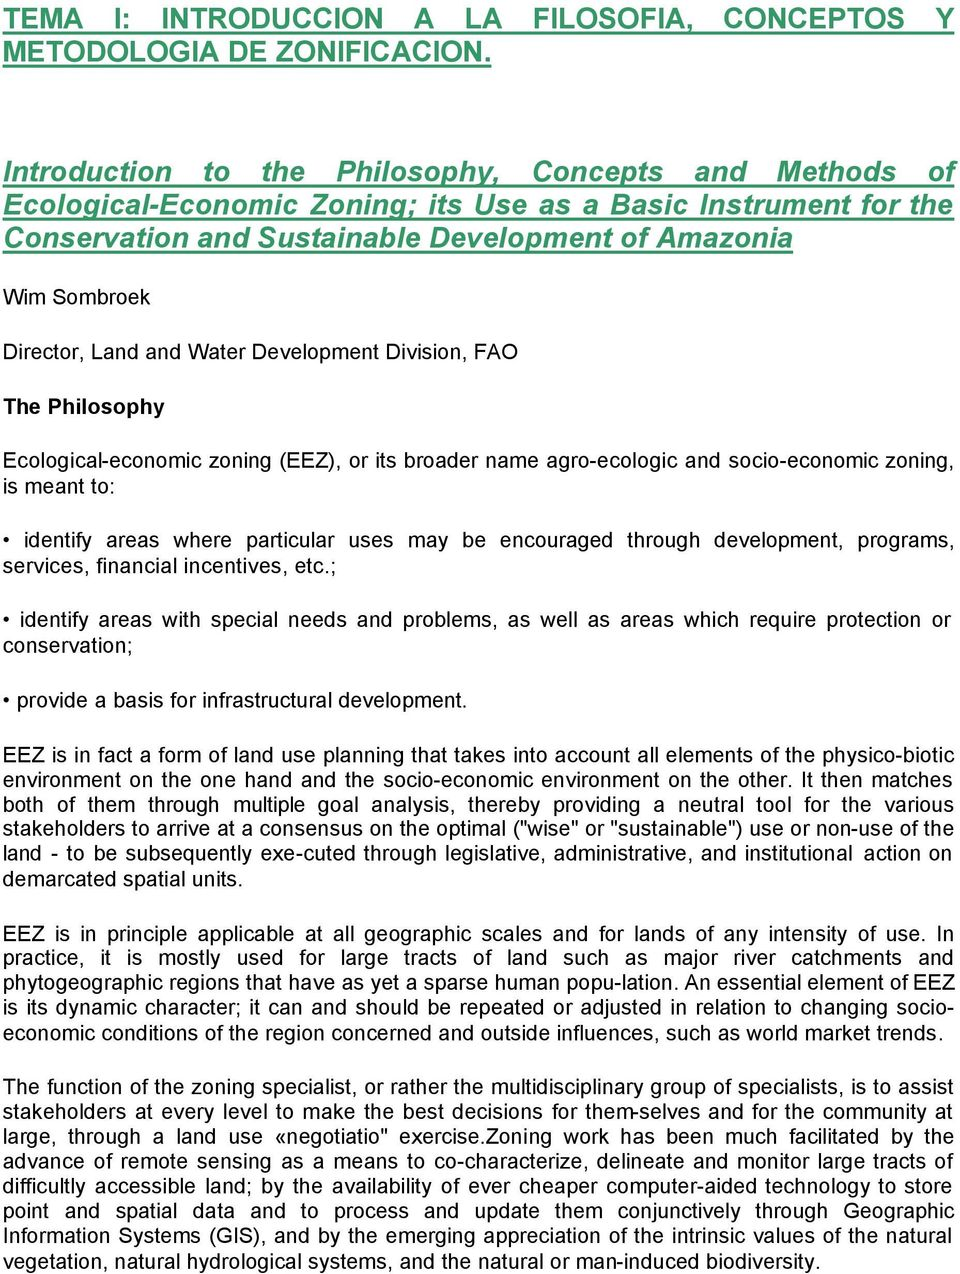 Land and Water Development Division, FAO The Philosophy Ecological-economic zoning (EEZ), or its broader name agro-ecologic and socio-economic zoning, is meant to: identify areas where particular